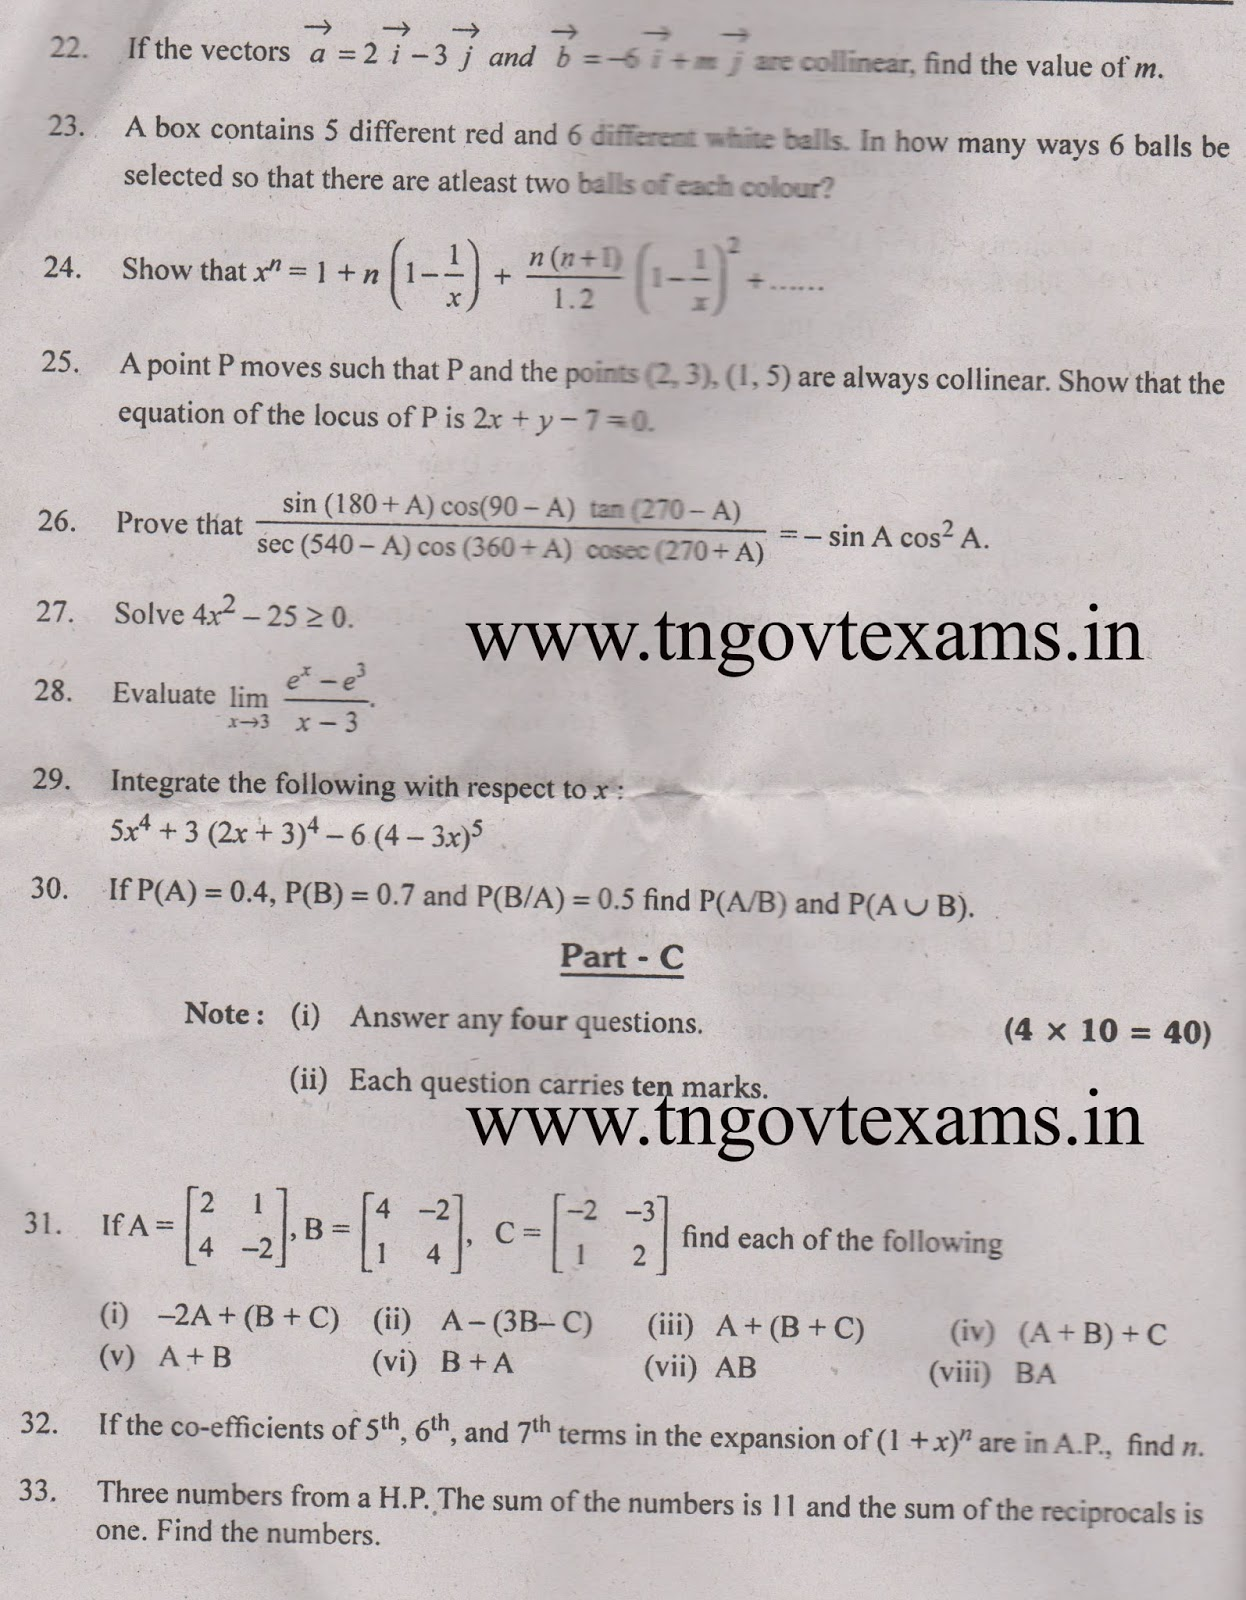 Download 11th maths revision question paper 2018